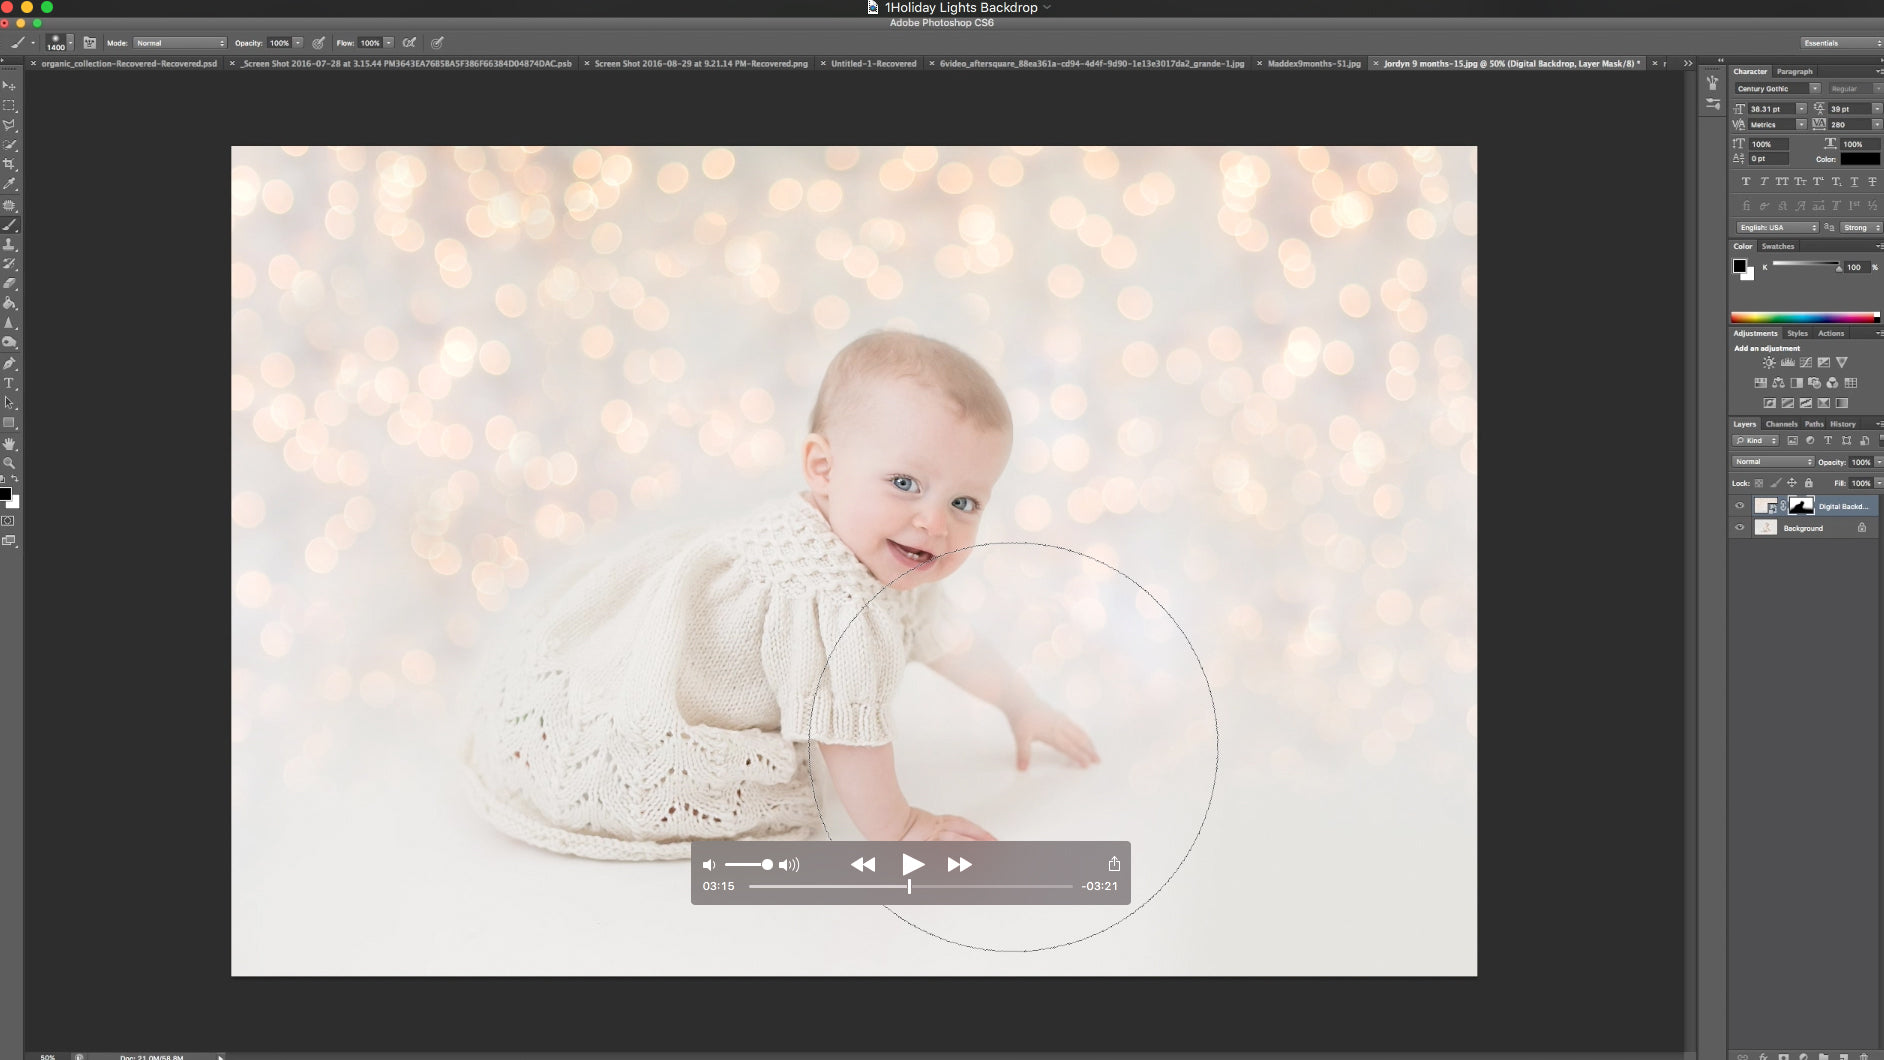 Free holiday backdrop tutorials free promotional text modern video tutorial on using a digital backdrop baditri Choice Image